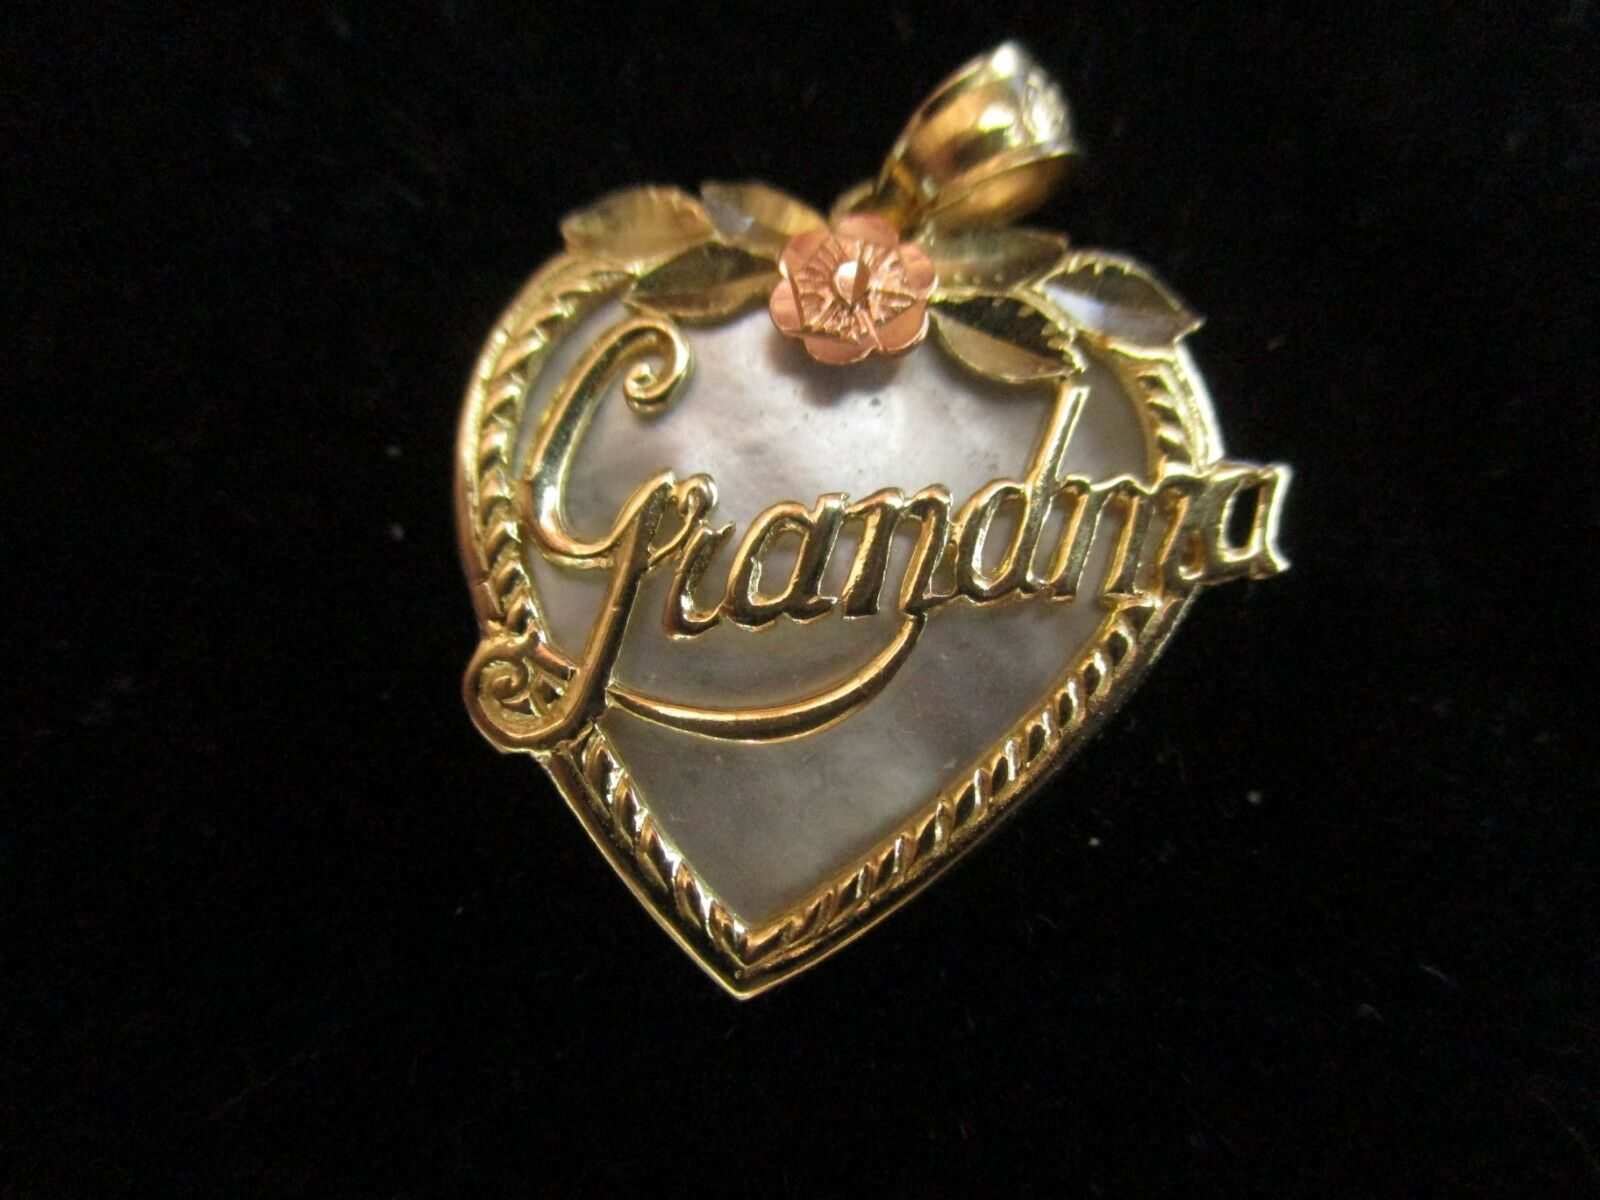 VINTAGE 14K YELLOW gold MOTHER OF PEARL GRANDMA PENDENT             (MARKED 14K)